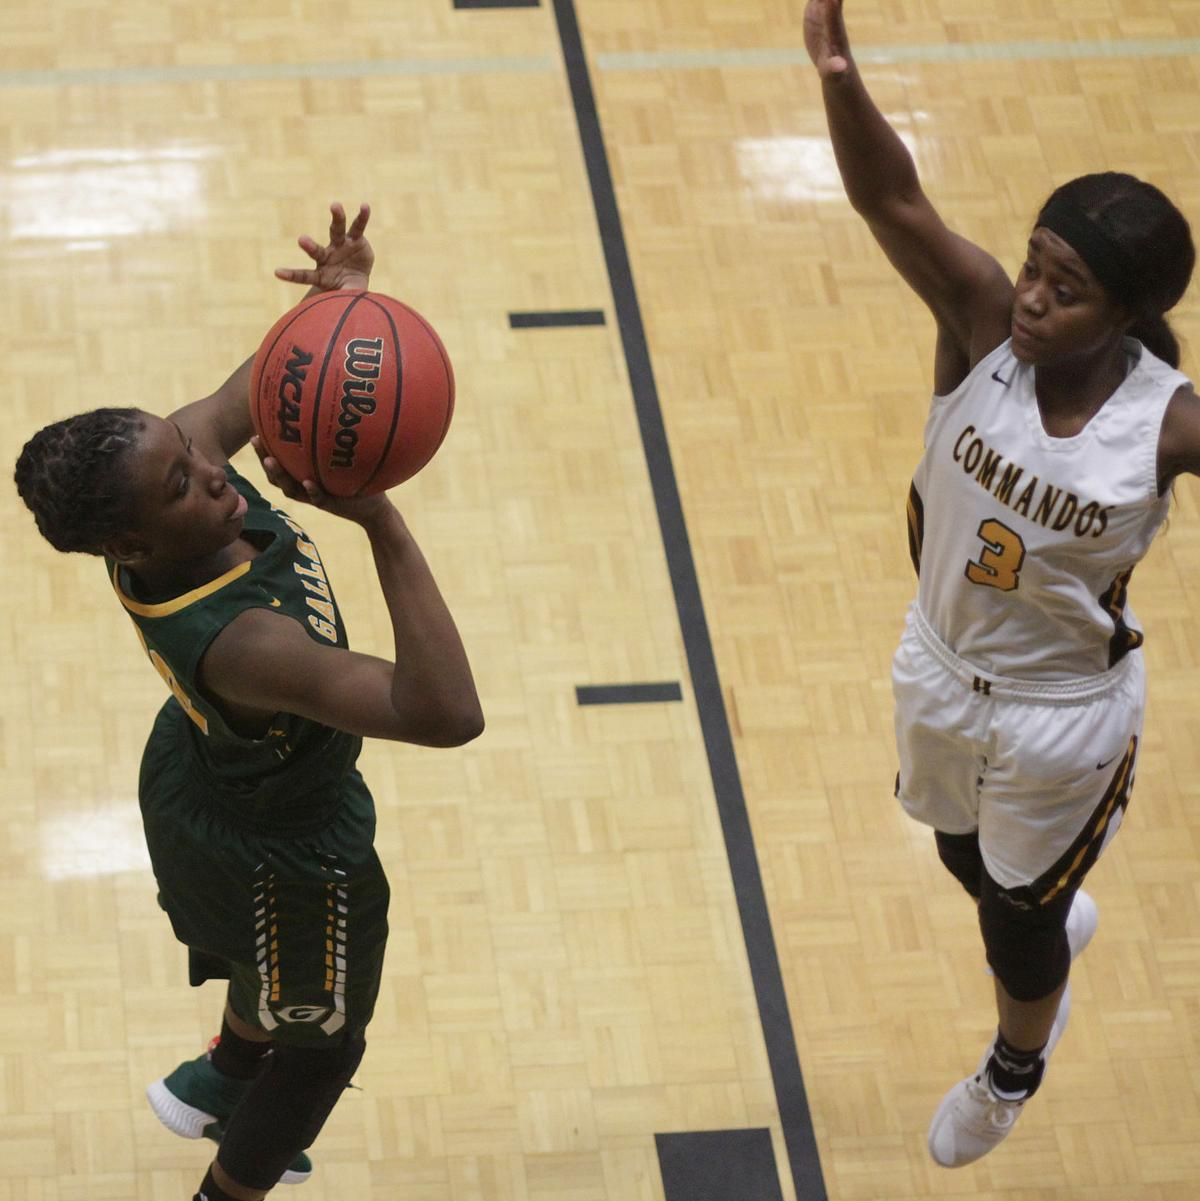 Janaya Newsome puts up a shot as Janaeya Mays defends. .jpg